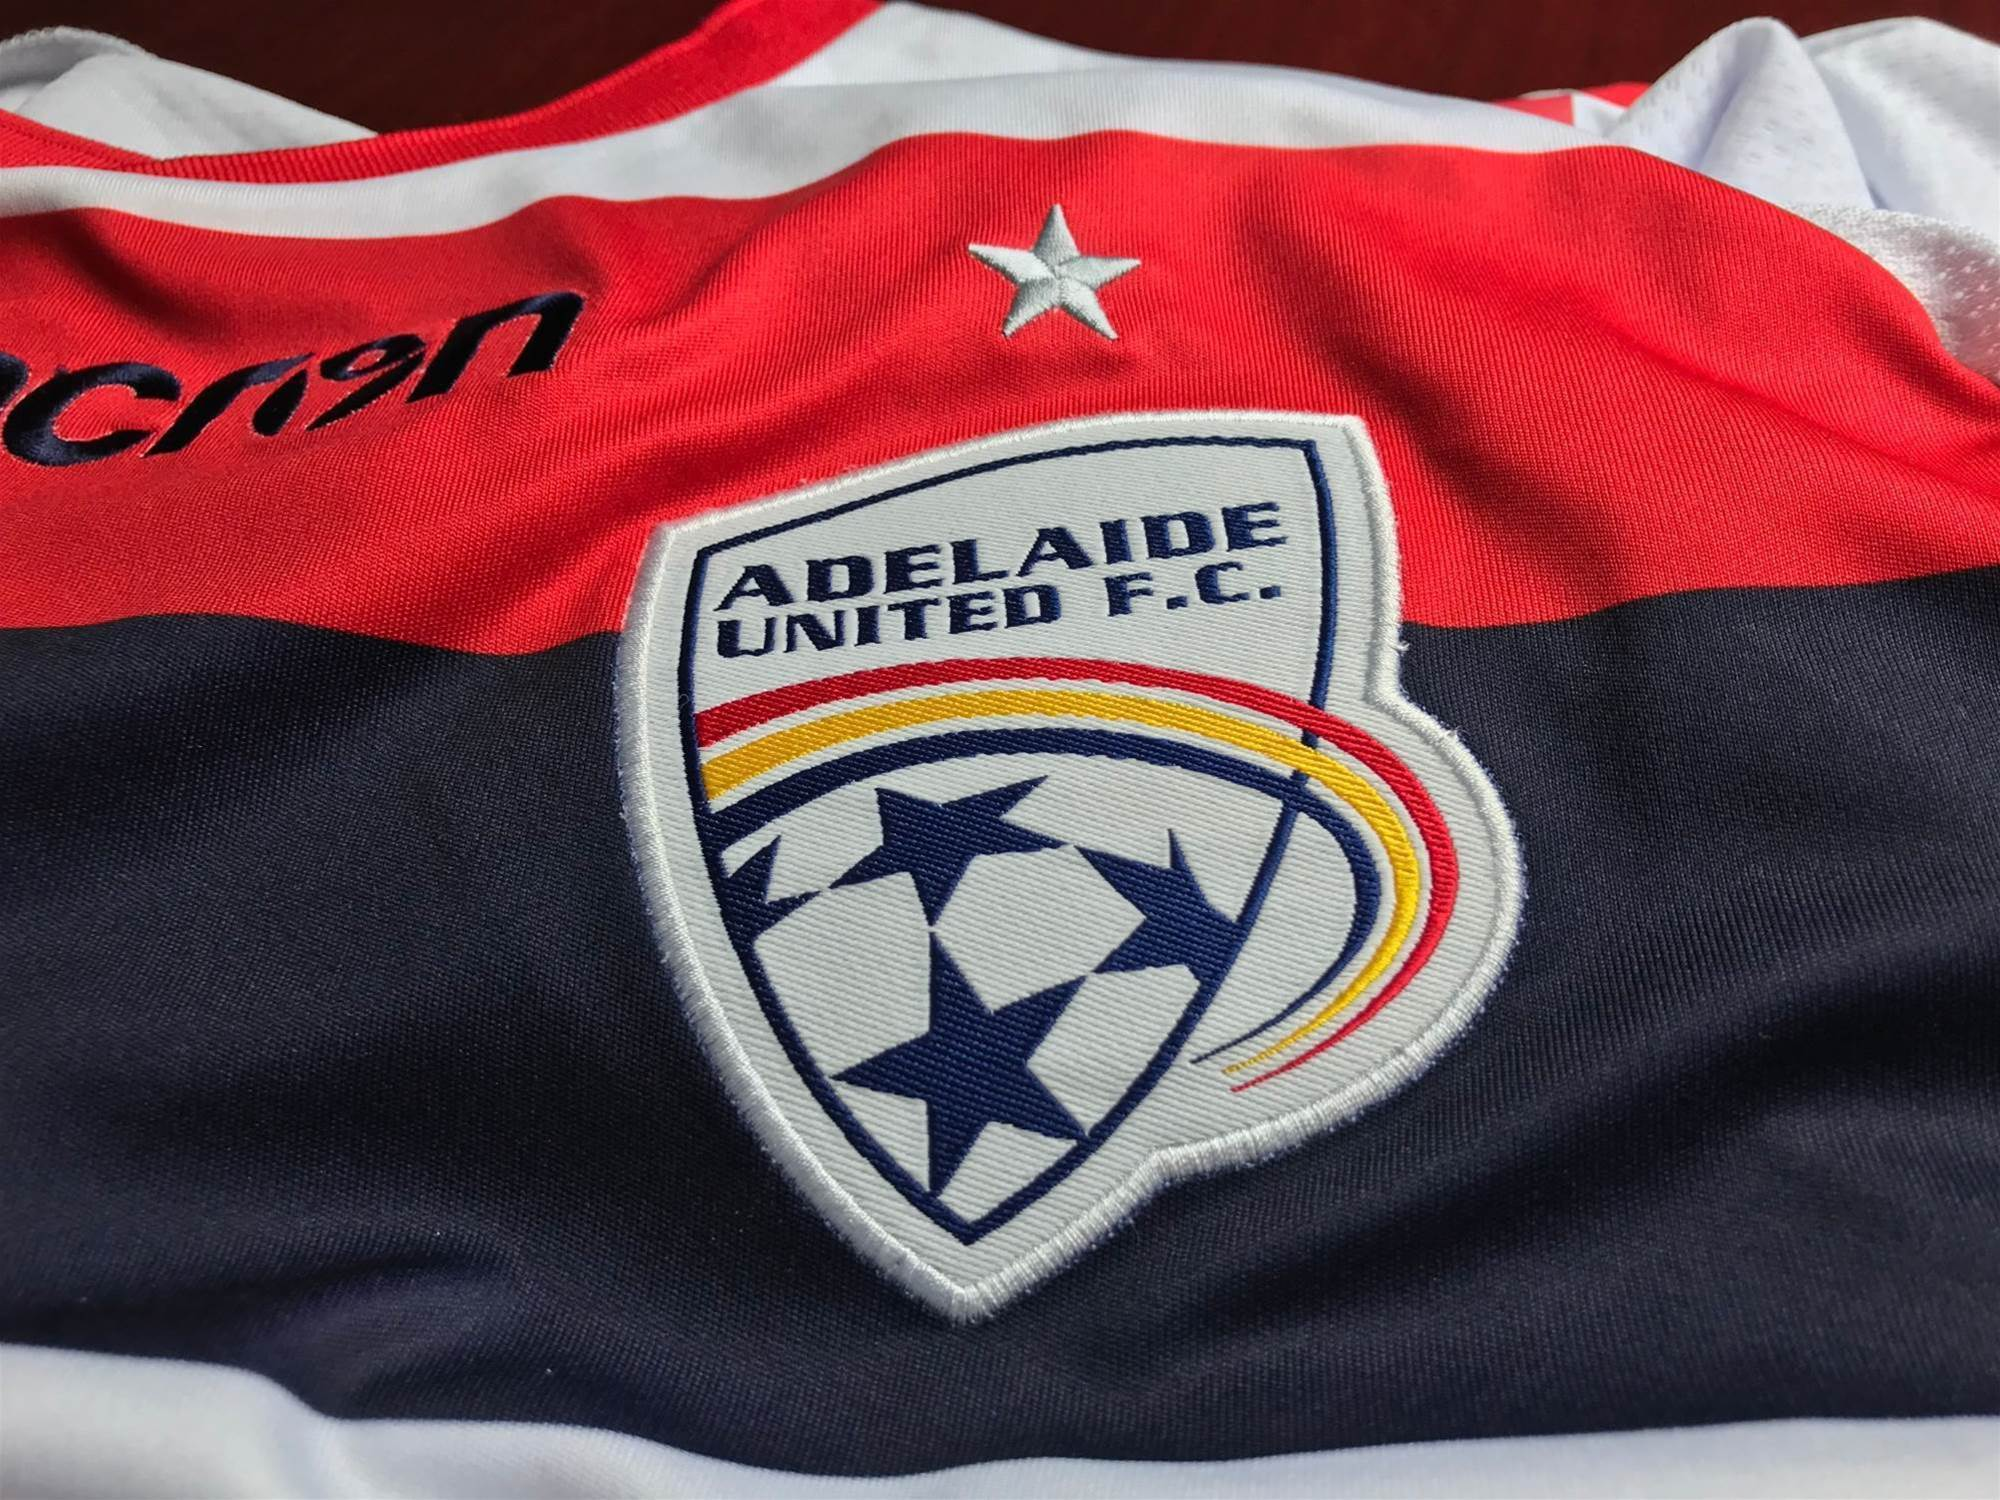 Revealed: Adelaide United's home and away kits!